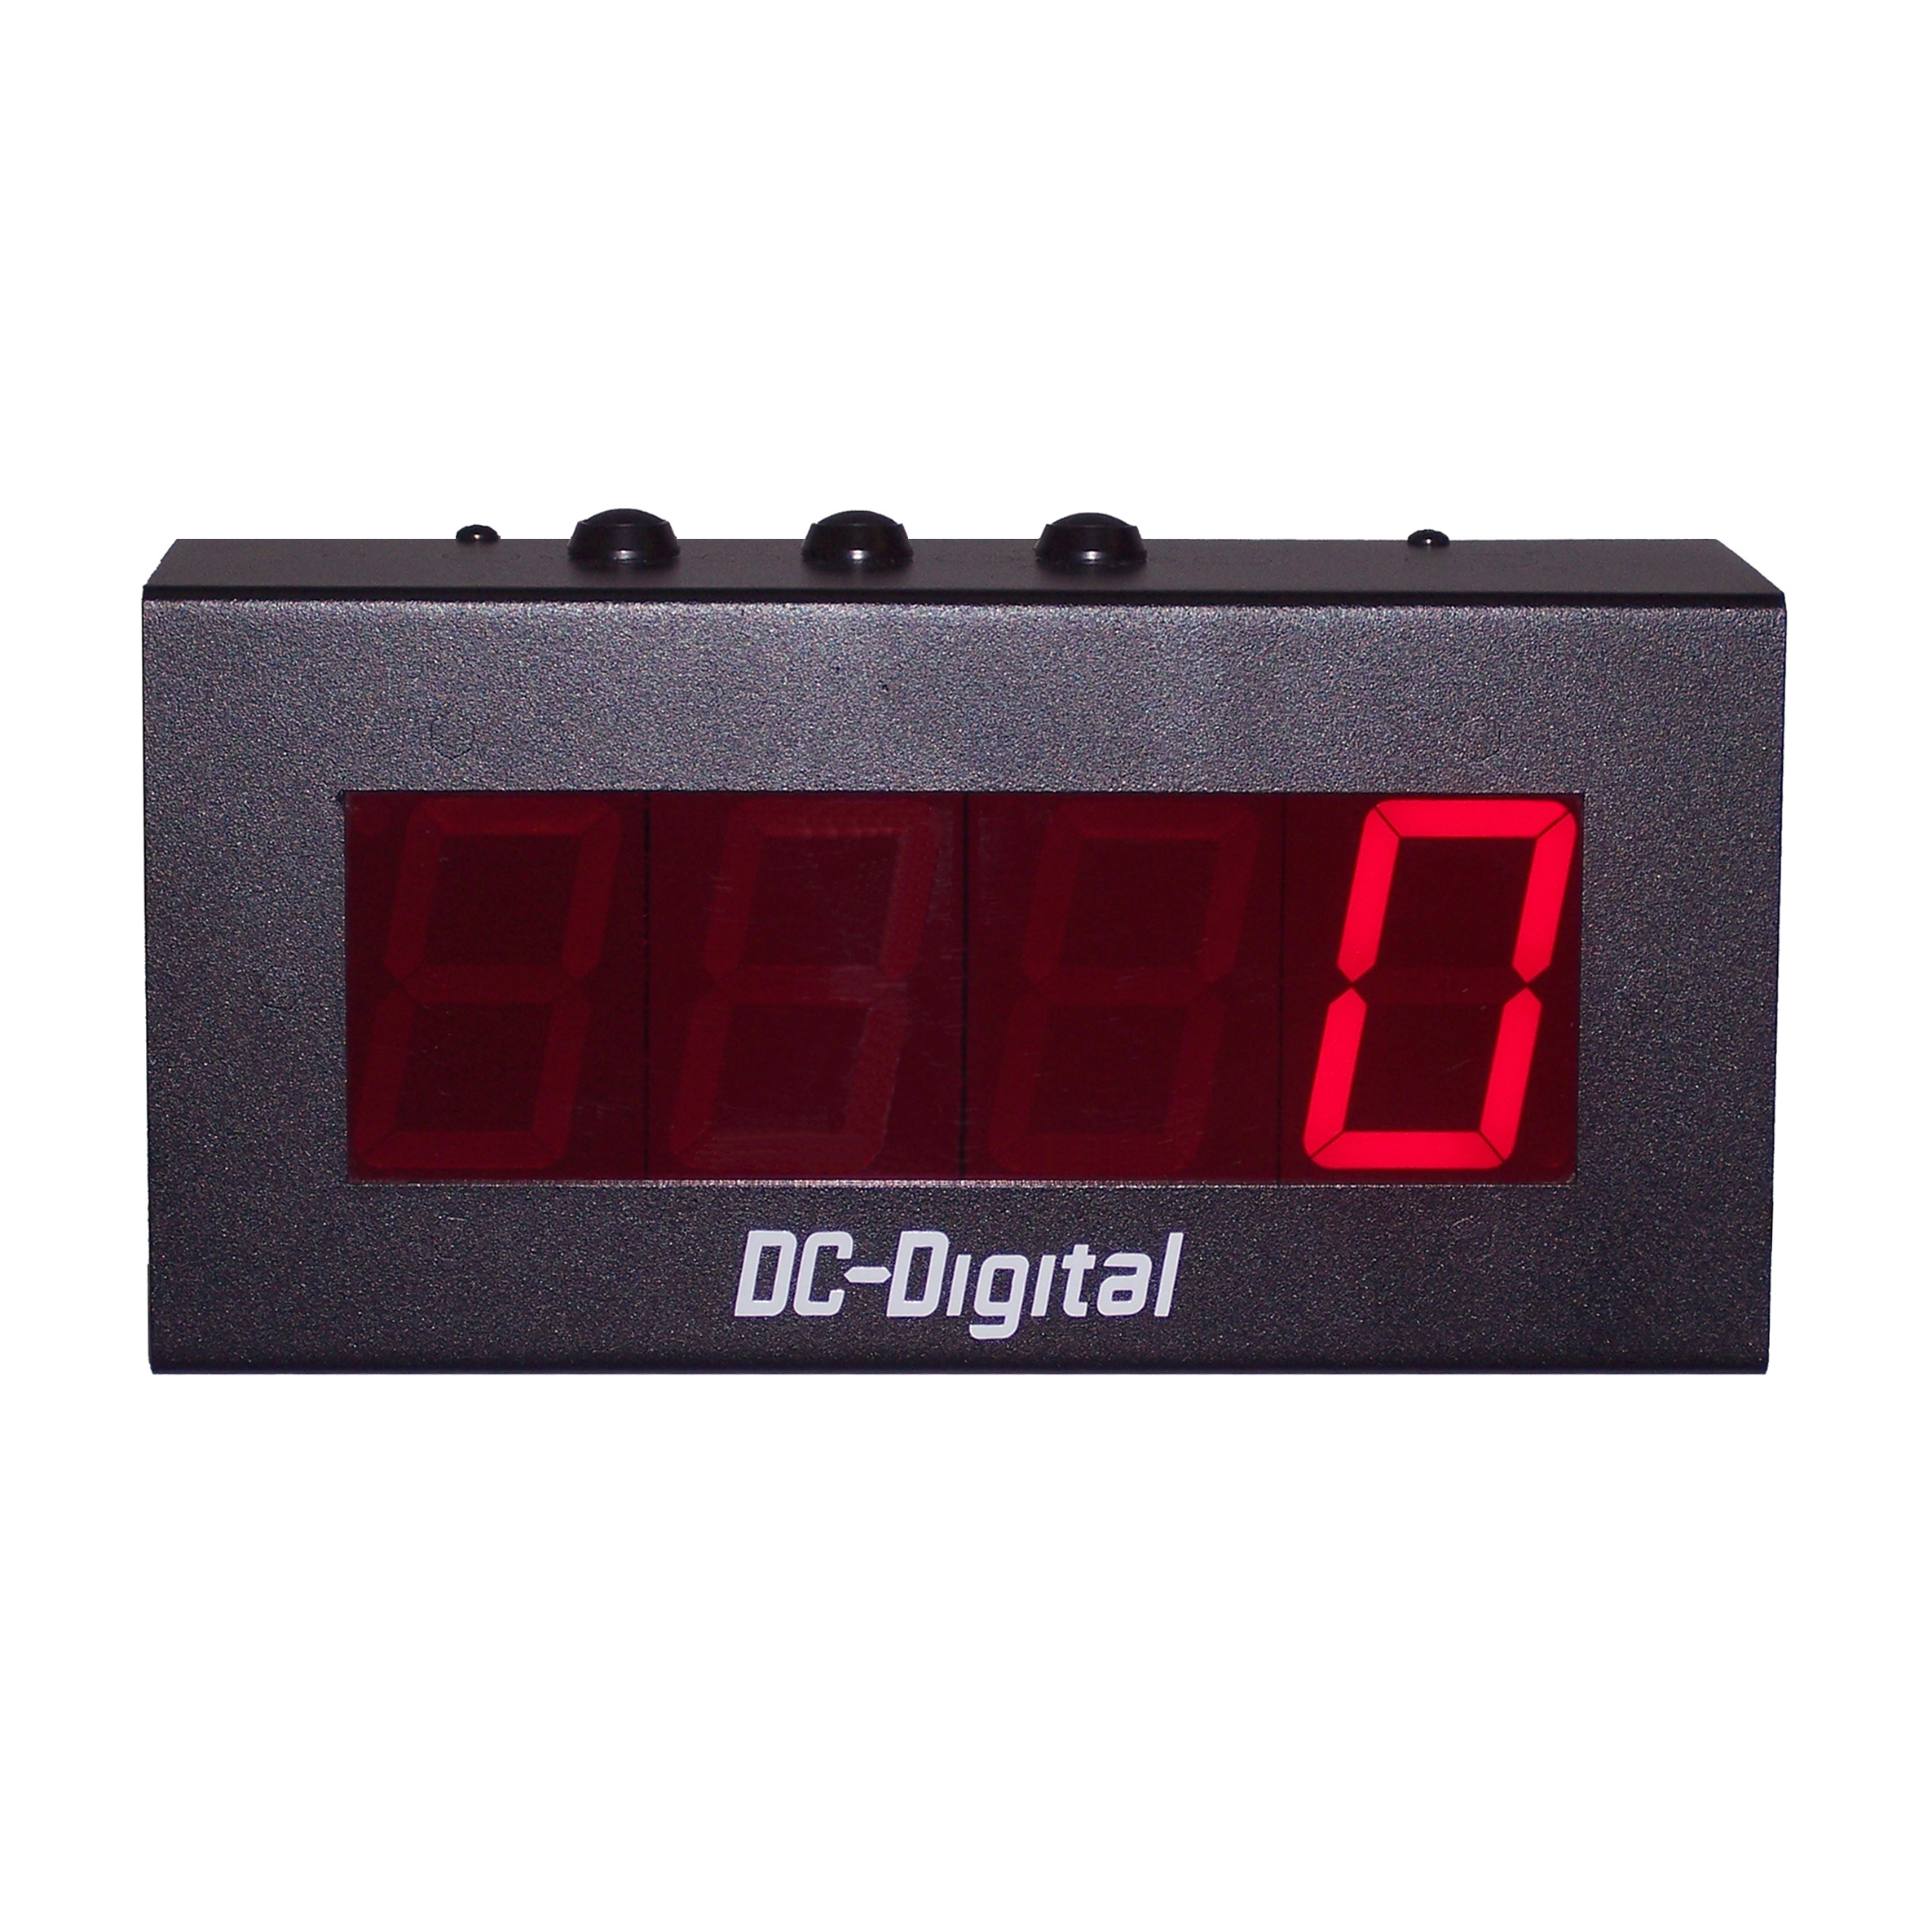 2 Input Counter : Dc c push button controlled digital counter inch